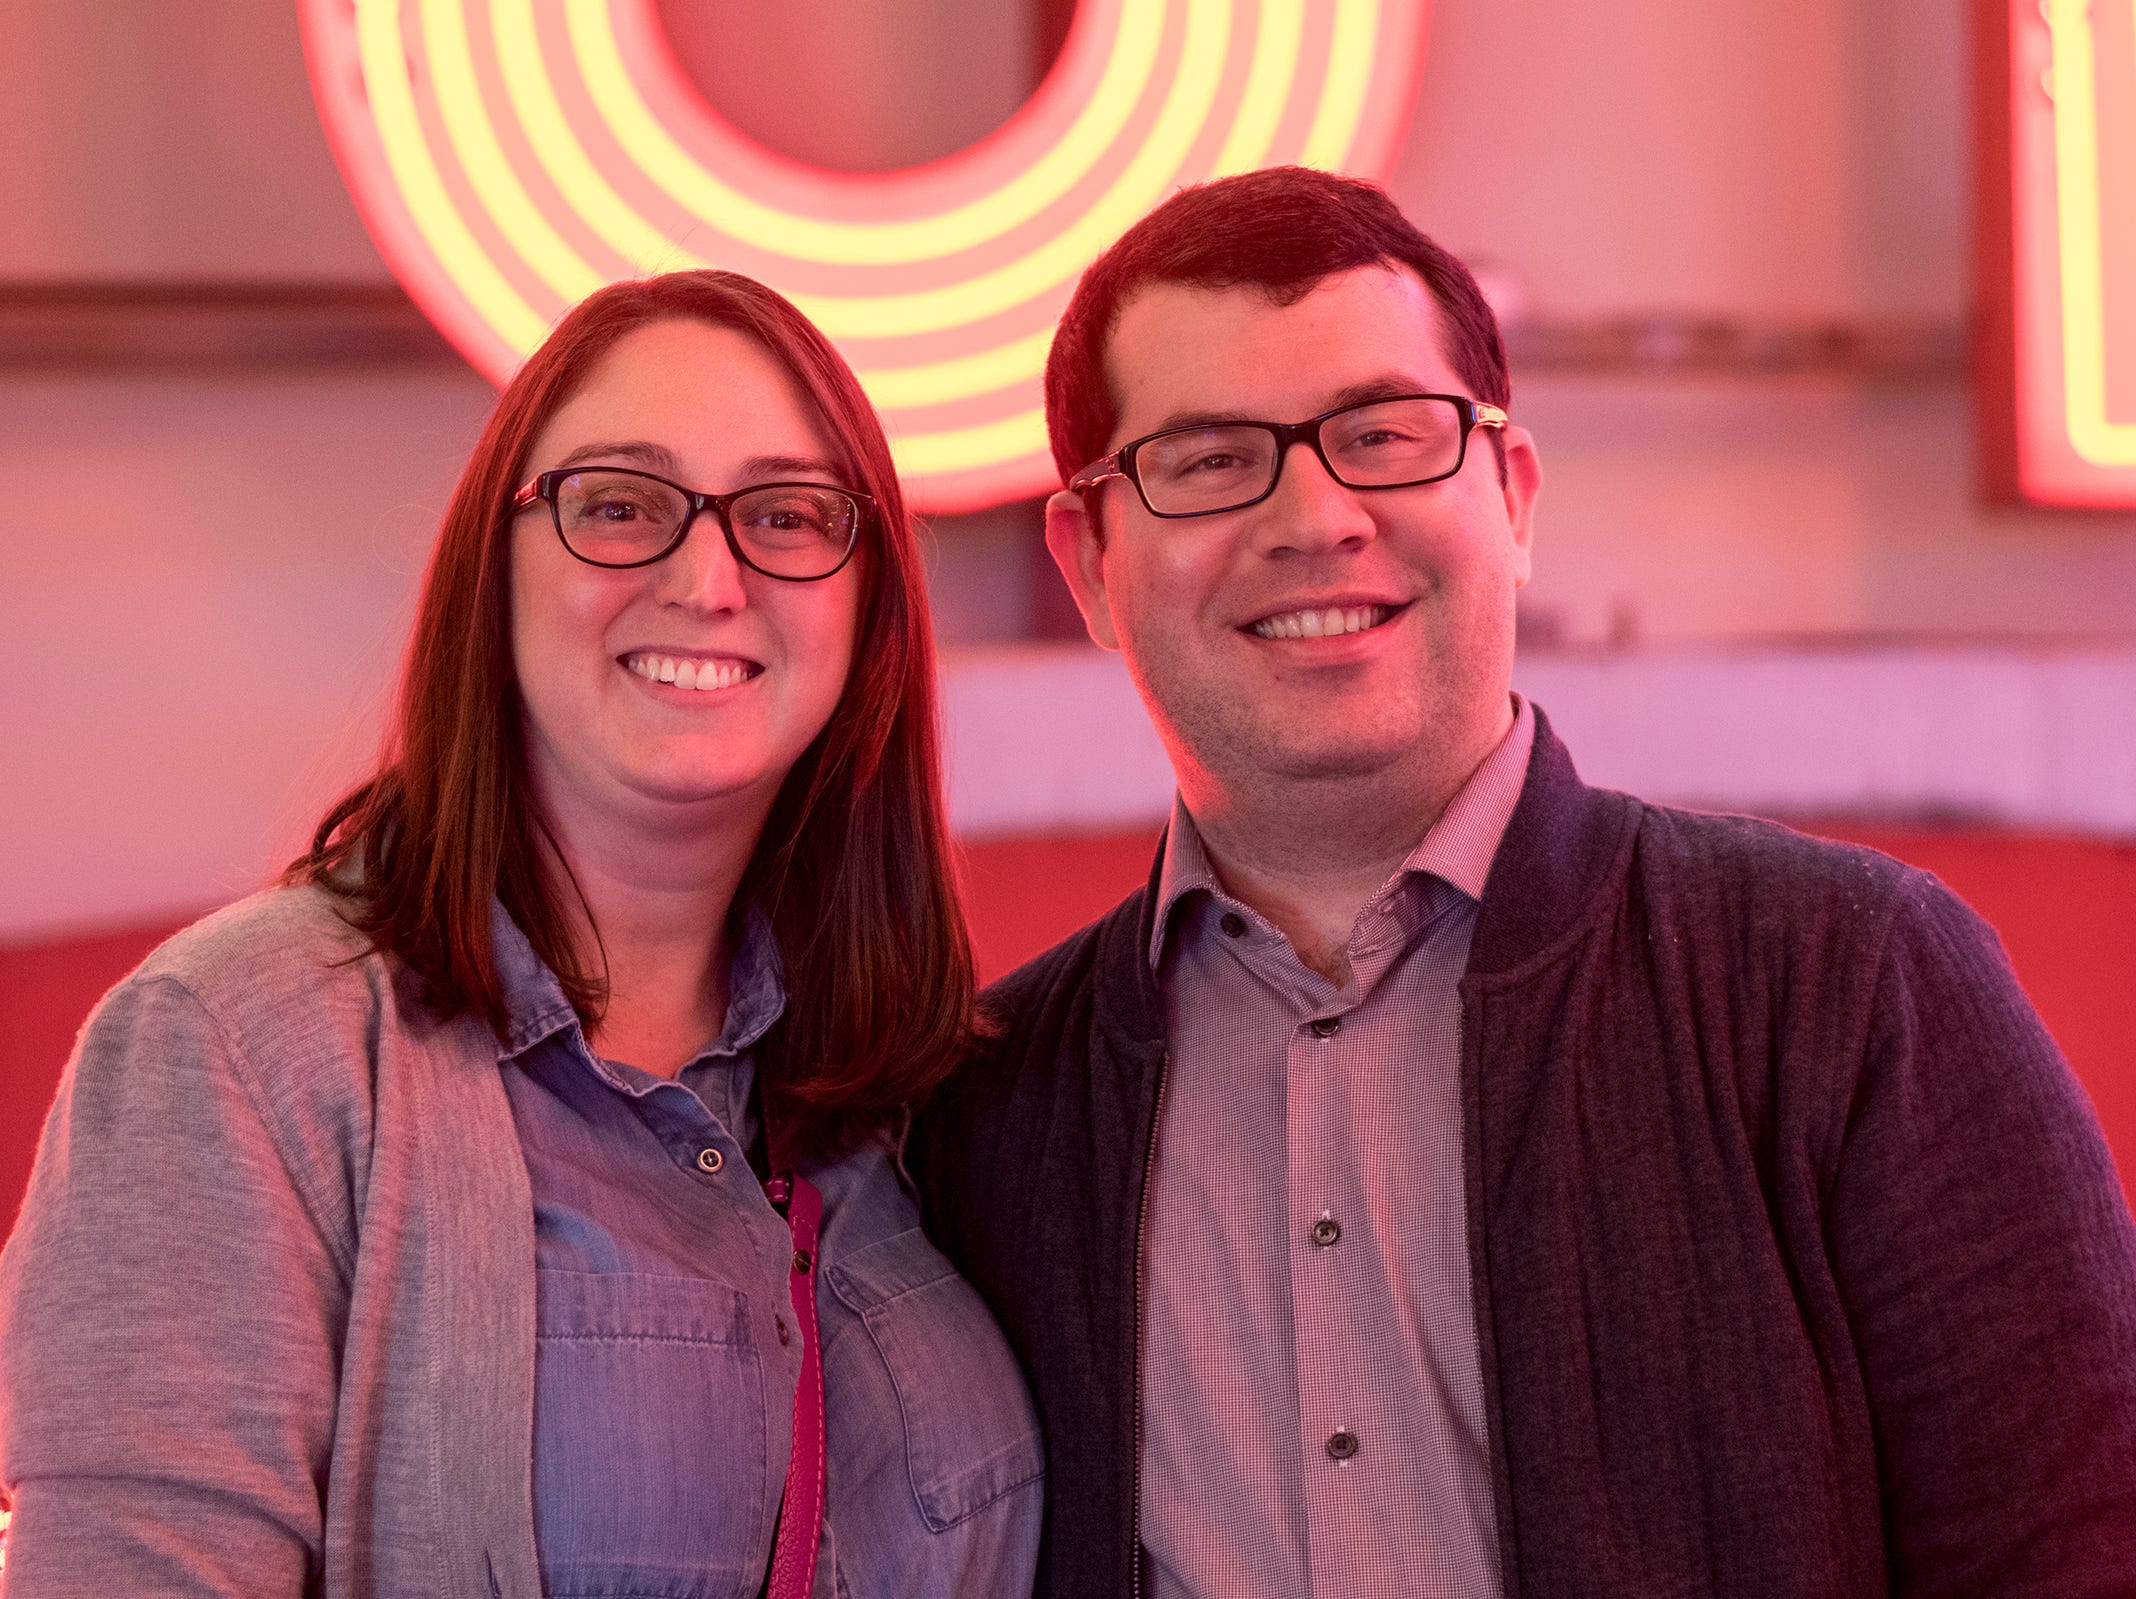 Michelle and Tyler Wall of Hyde Park attend Signs and Suds, featuring Rhinegeist beers at the American Sign Museum Thursday, January 24, 2019 in Cincinnati, Ohio.